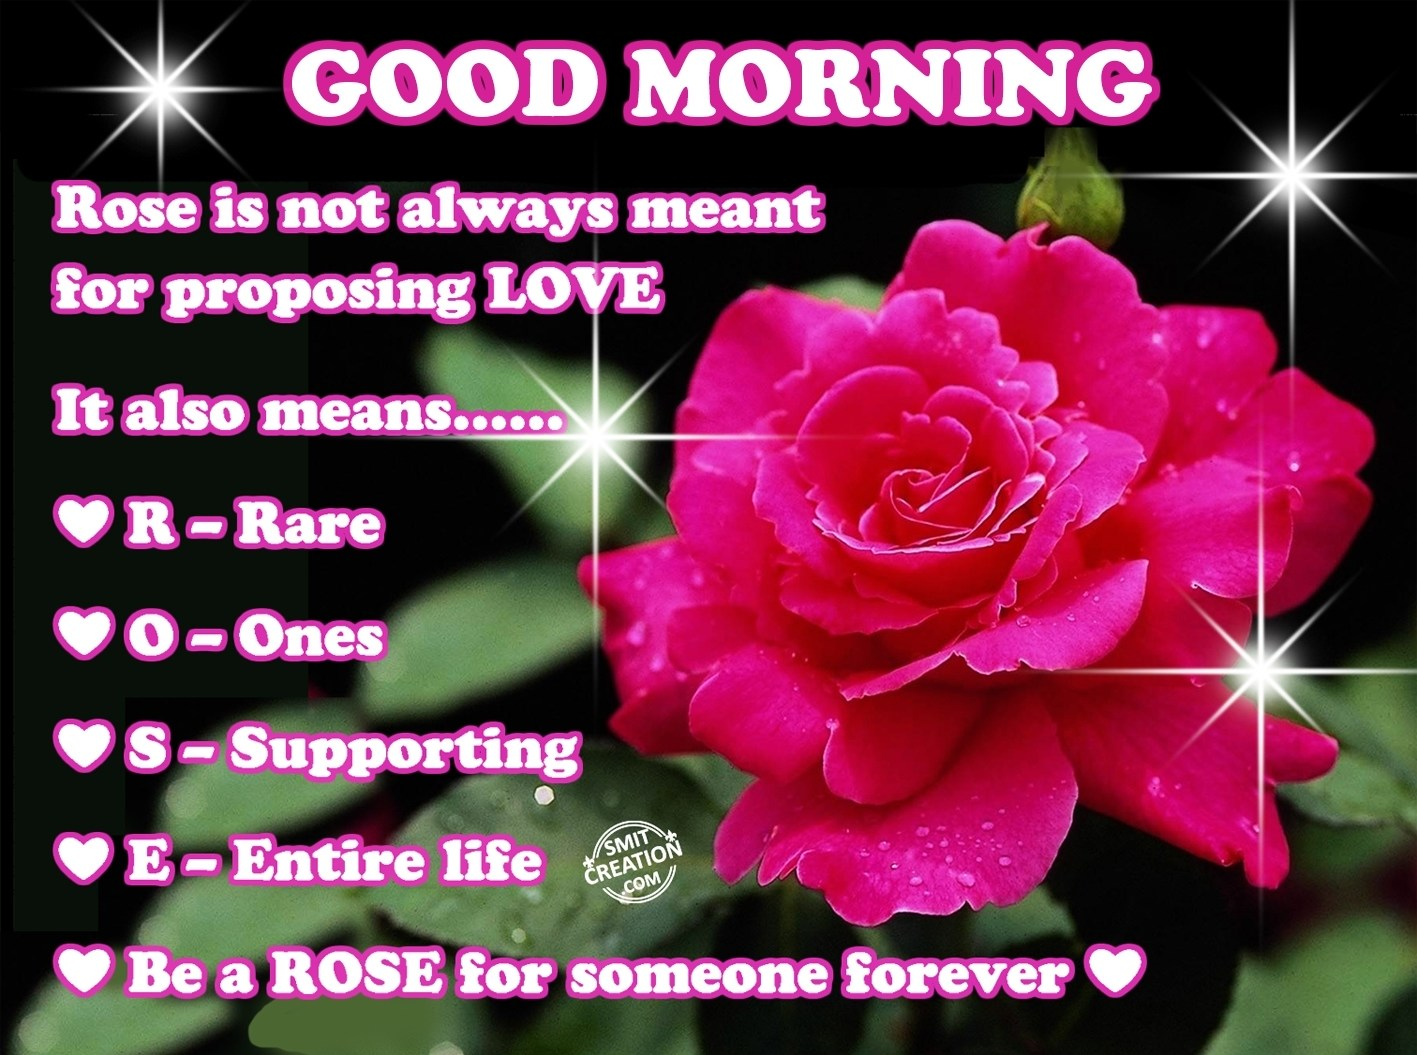 good morning love pictures and graphics smitcreation com page 3